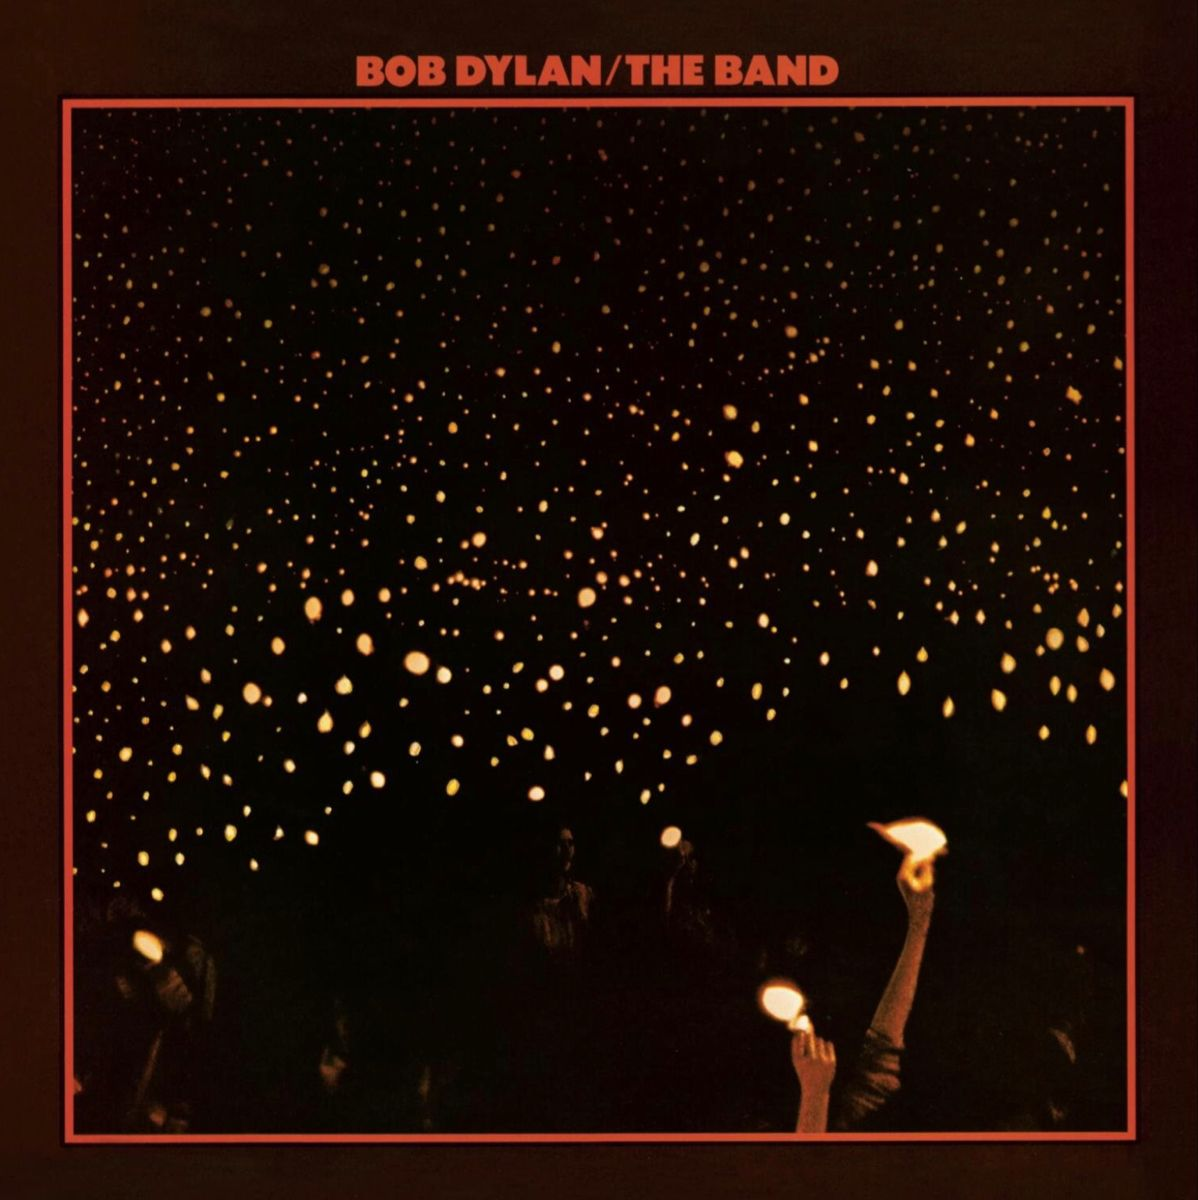 Bob Dylan The Band Before The Flood 2lp Set 1974 In 2020 Before The Flood Bob Dylan Album Covers Bob Dylan